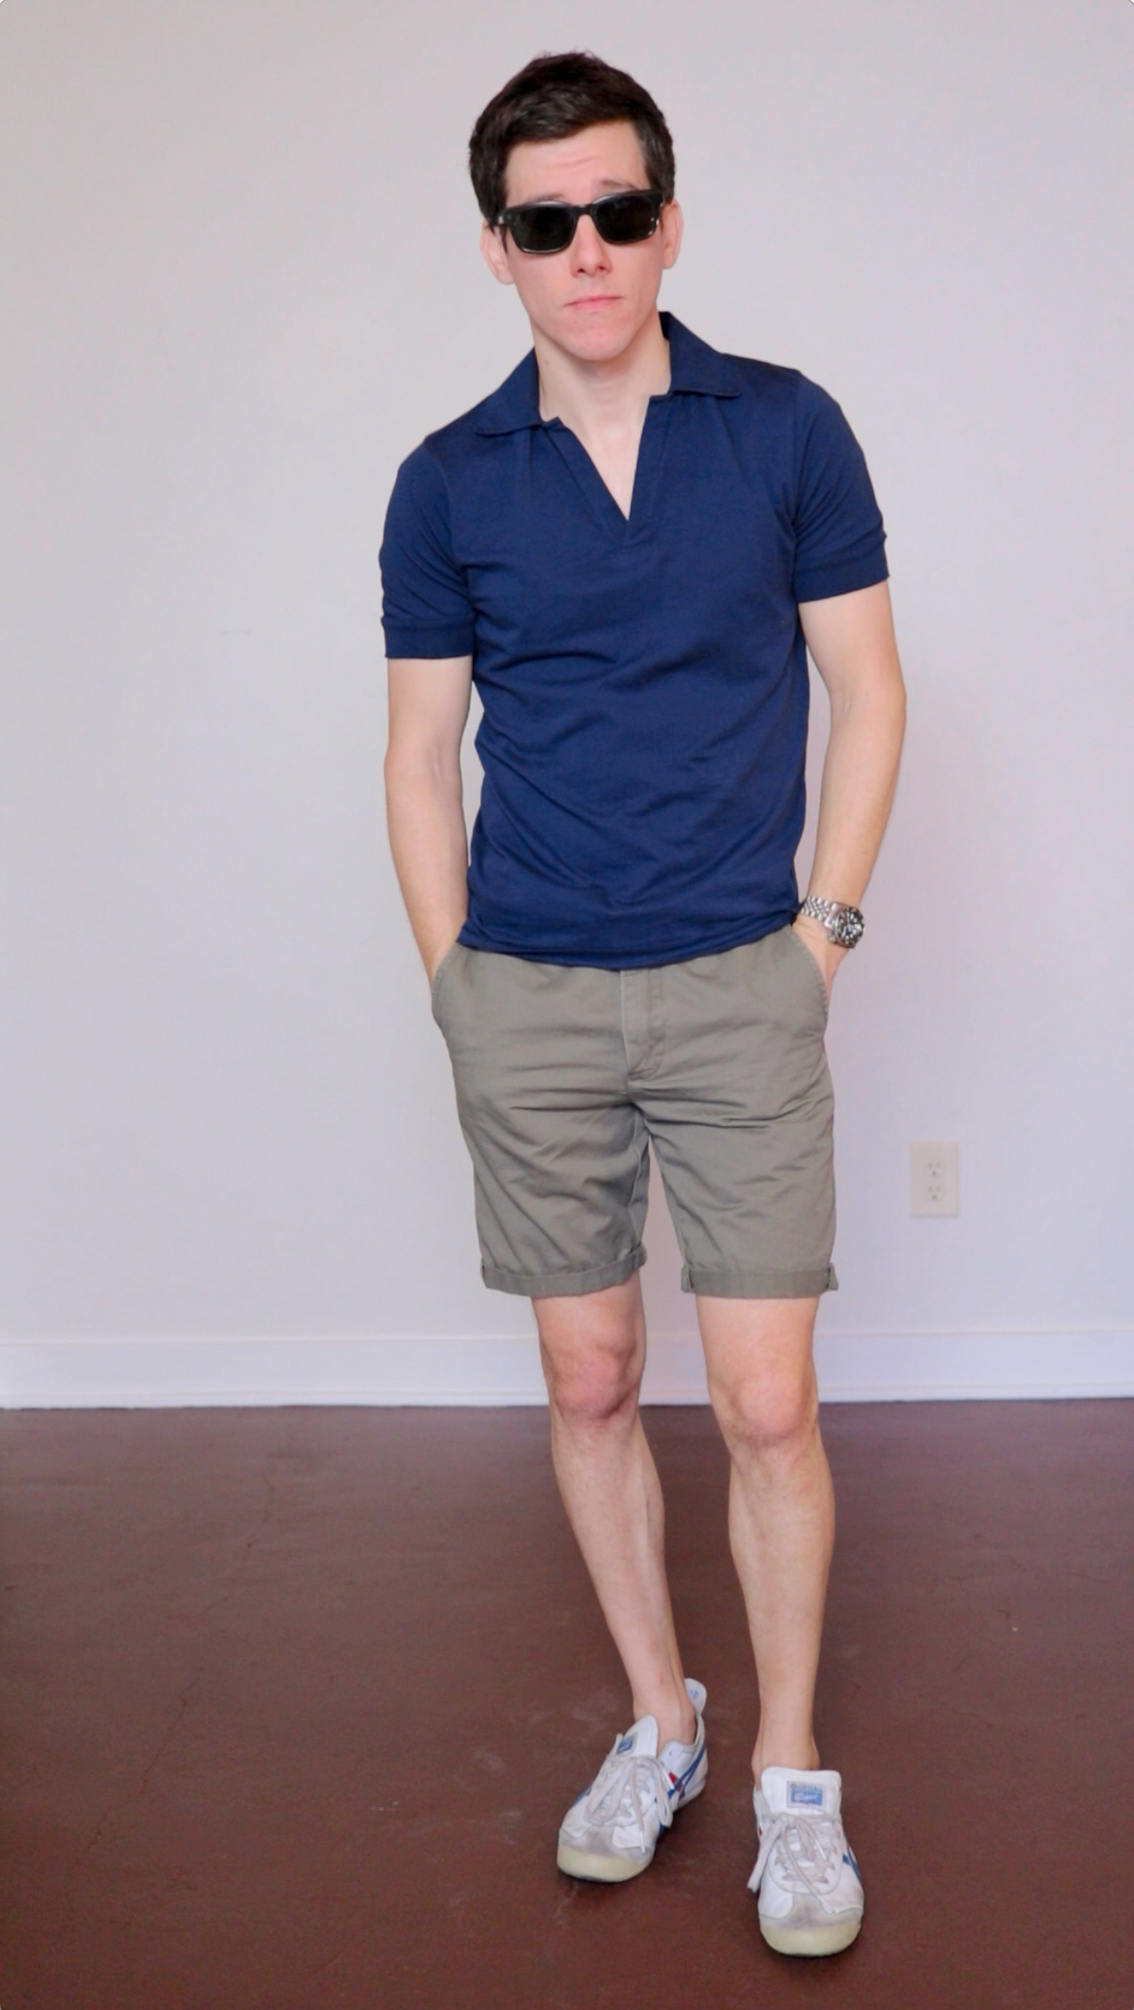 Polo shirt and chino shorts